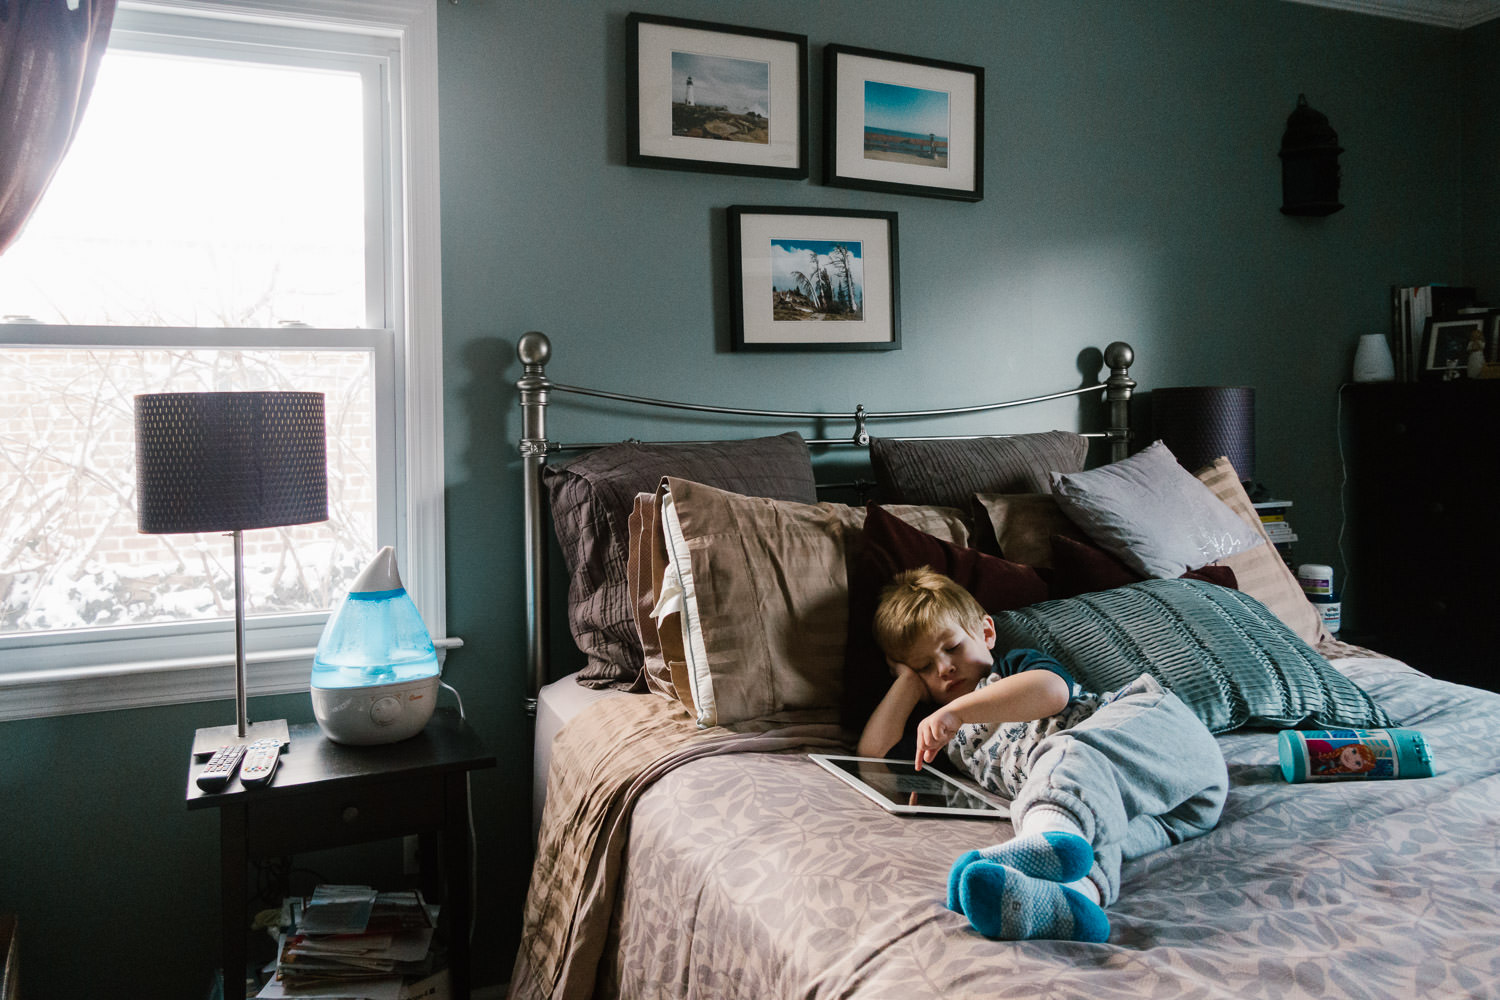 A little boy plays with an ipad on his parents' bed.